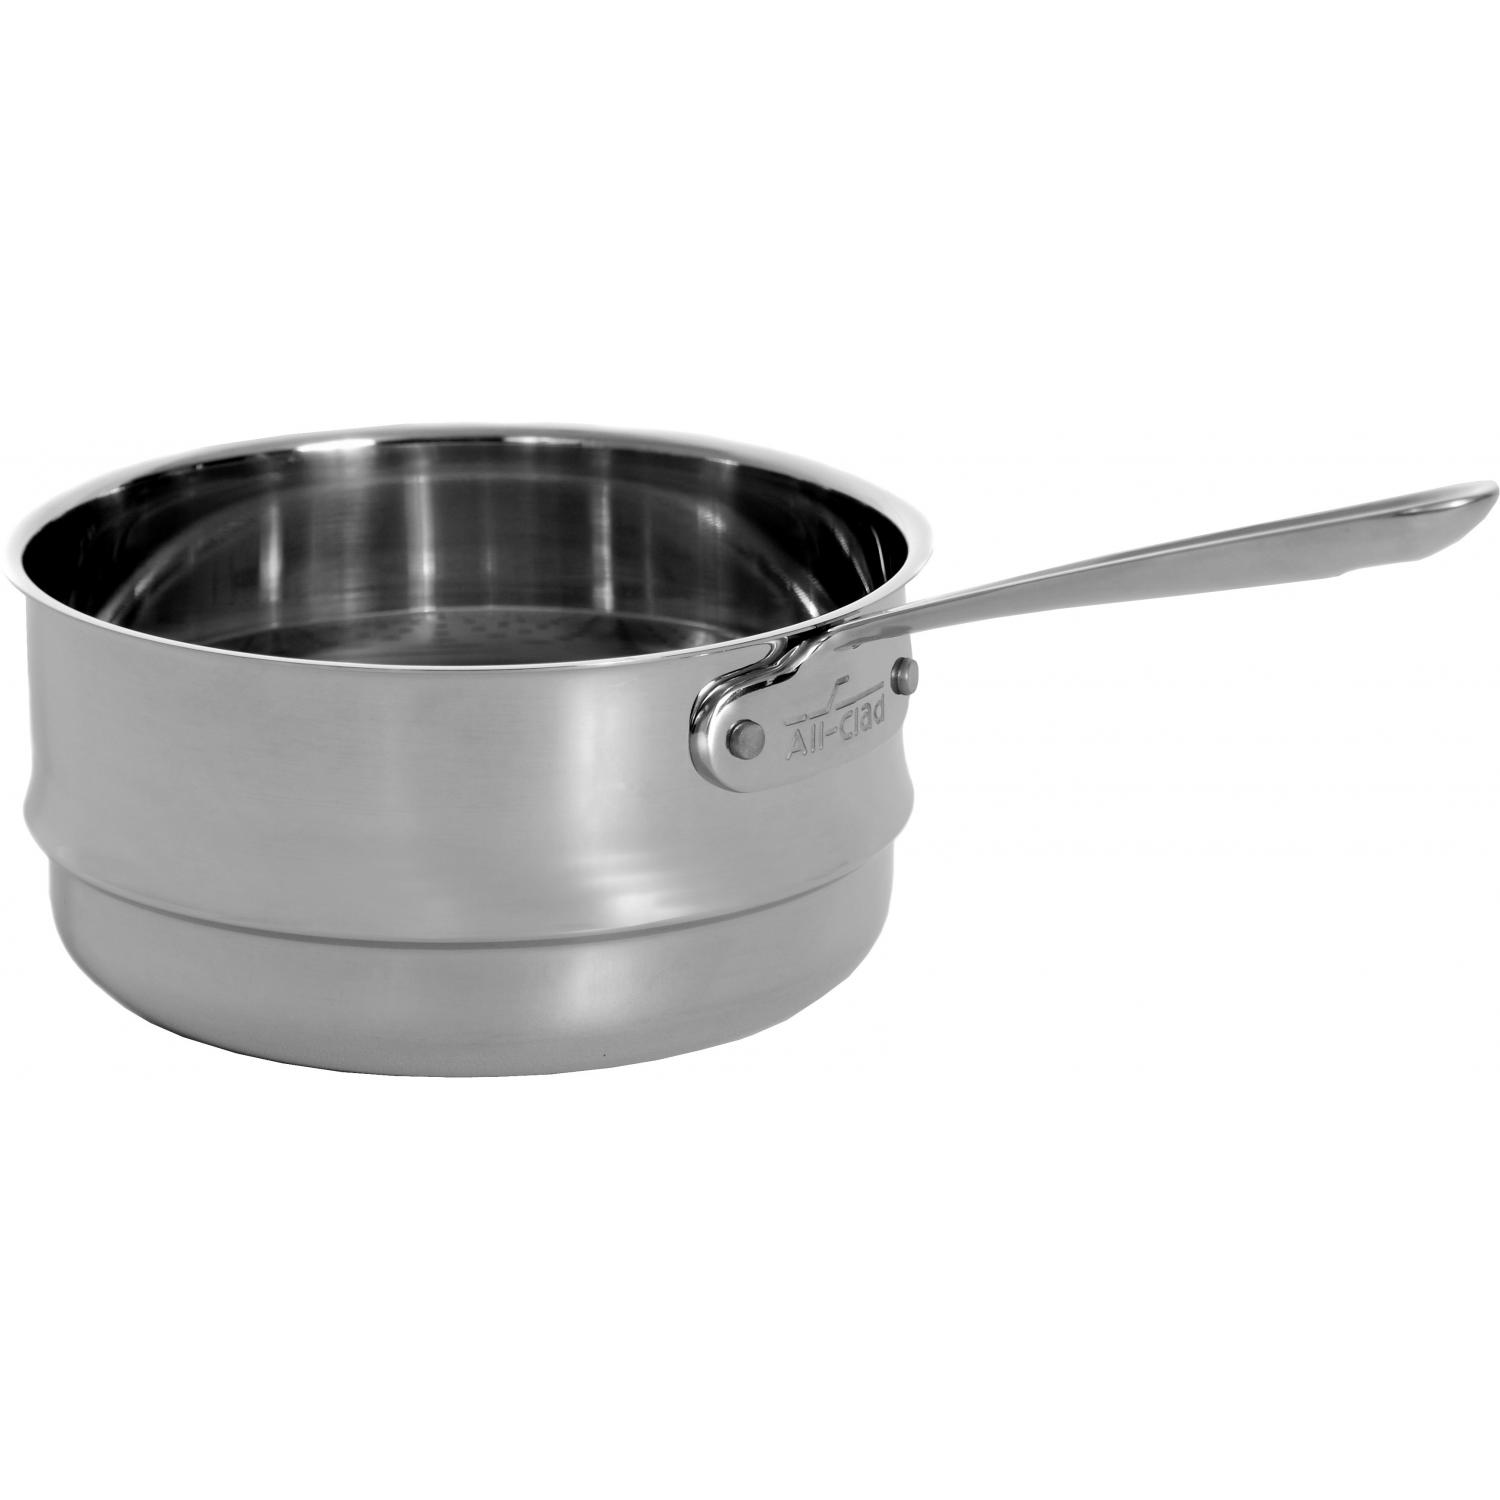 All-Clad Stainless 3-Quart Universal Steamer